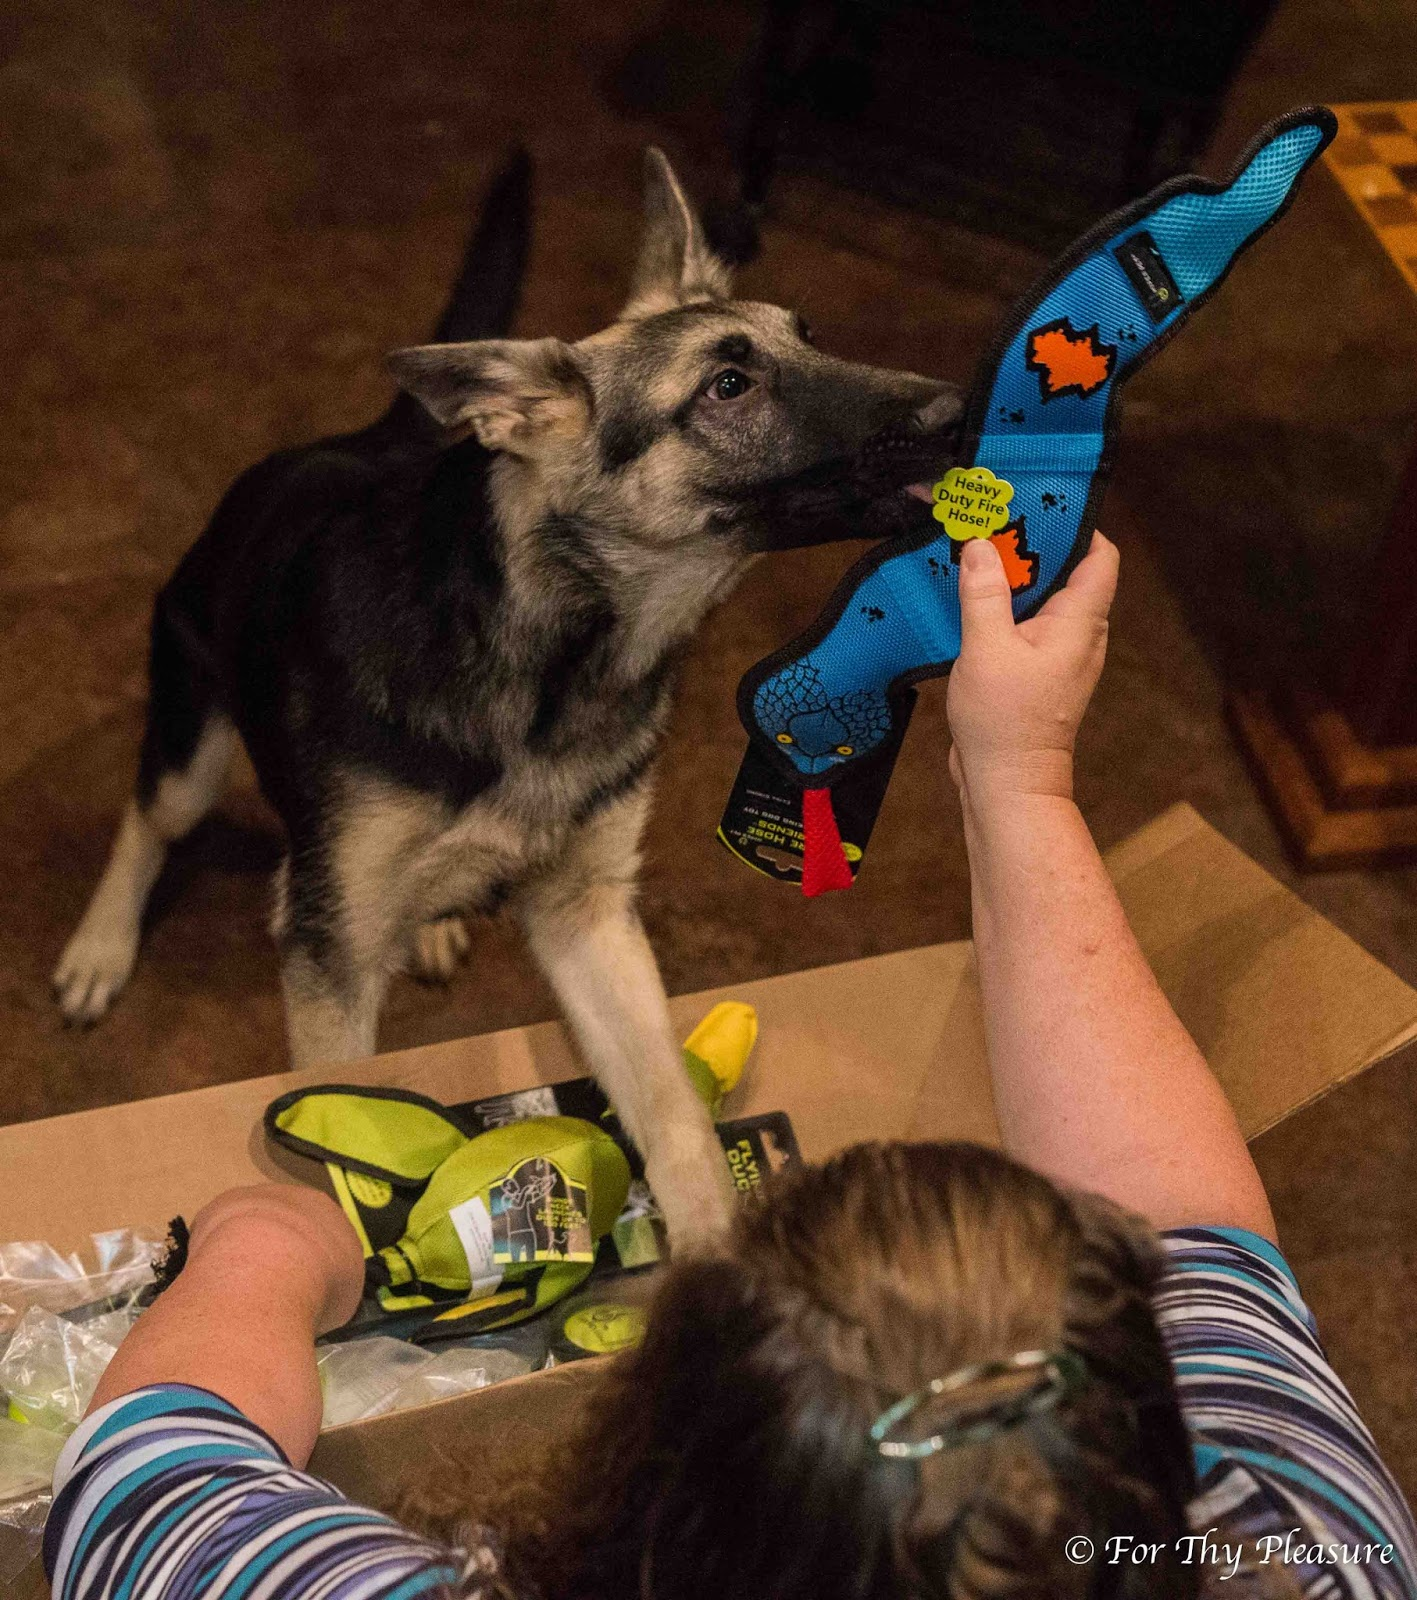 Hyperactive Puppy: At The Fence: Hyper Pet Dog Toys For The Holidays